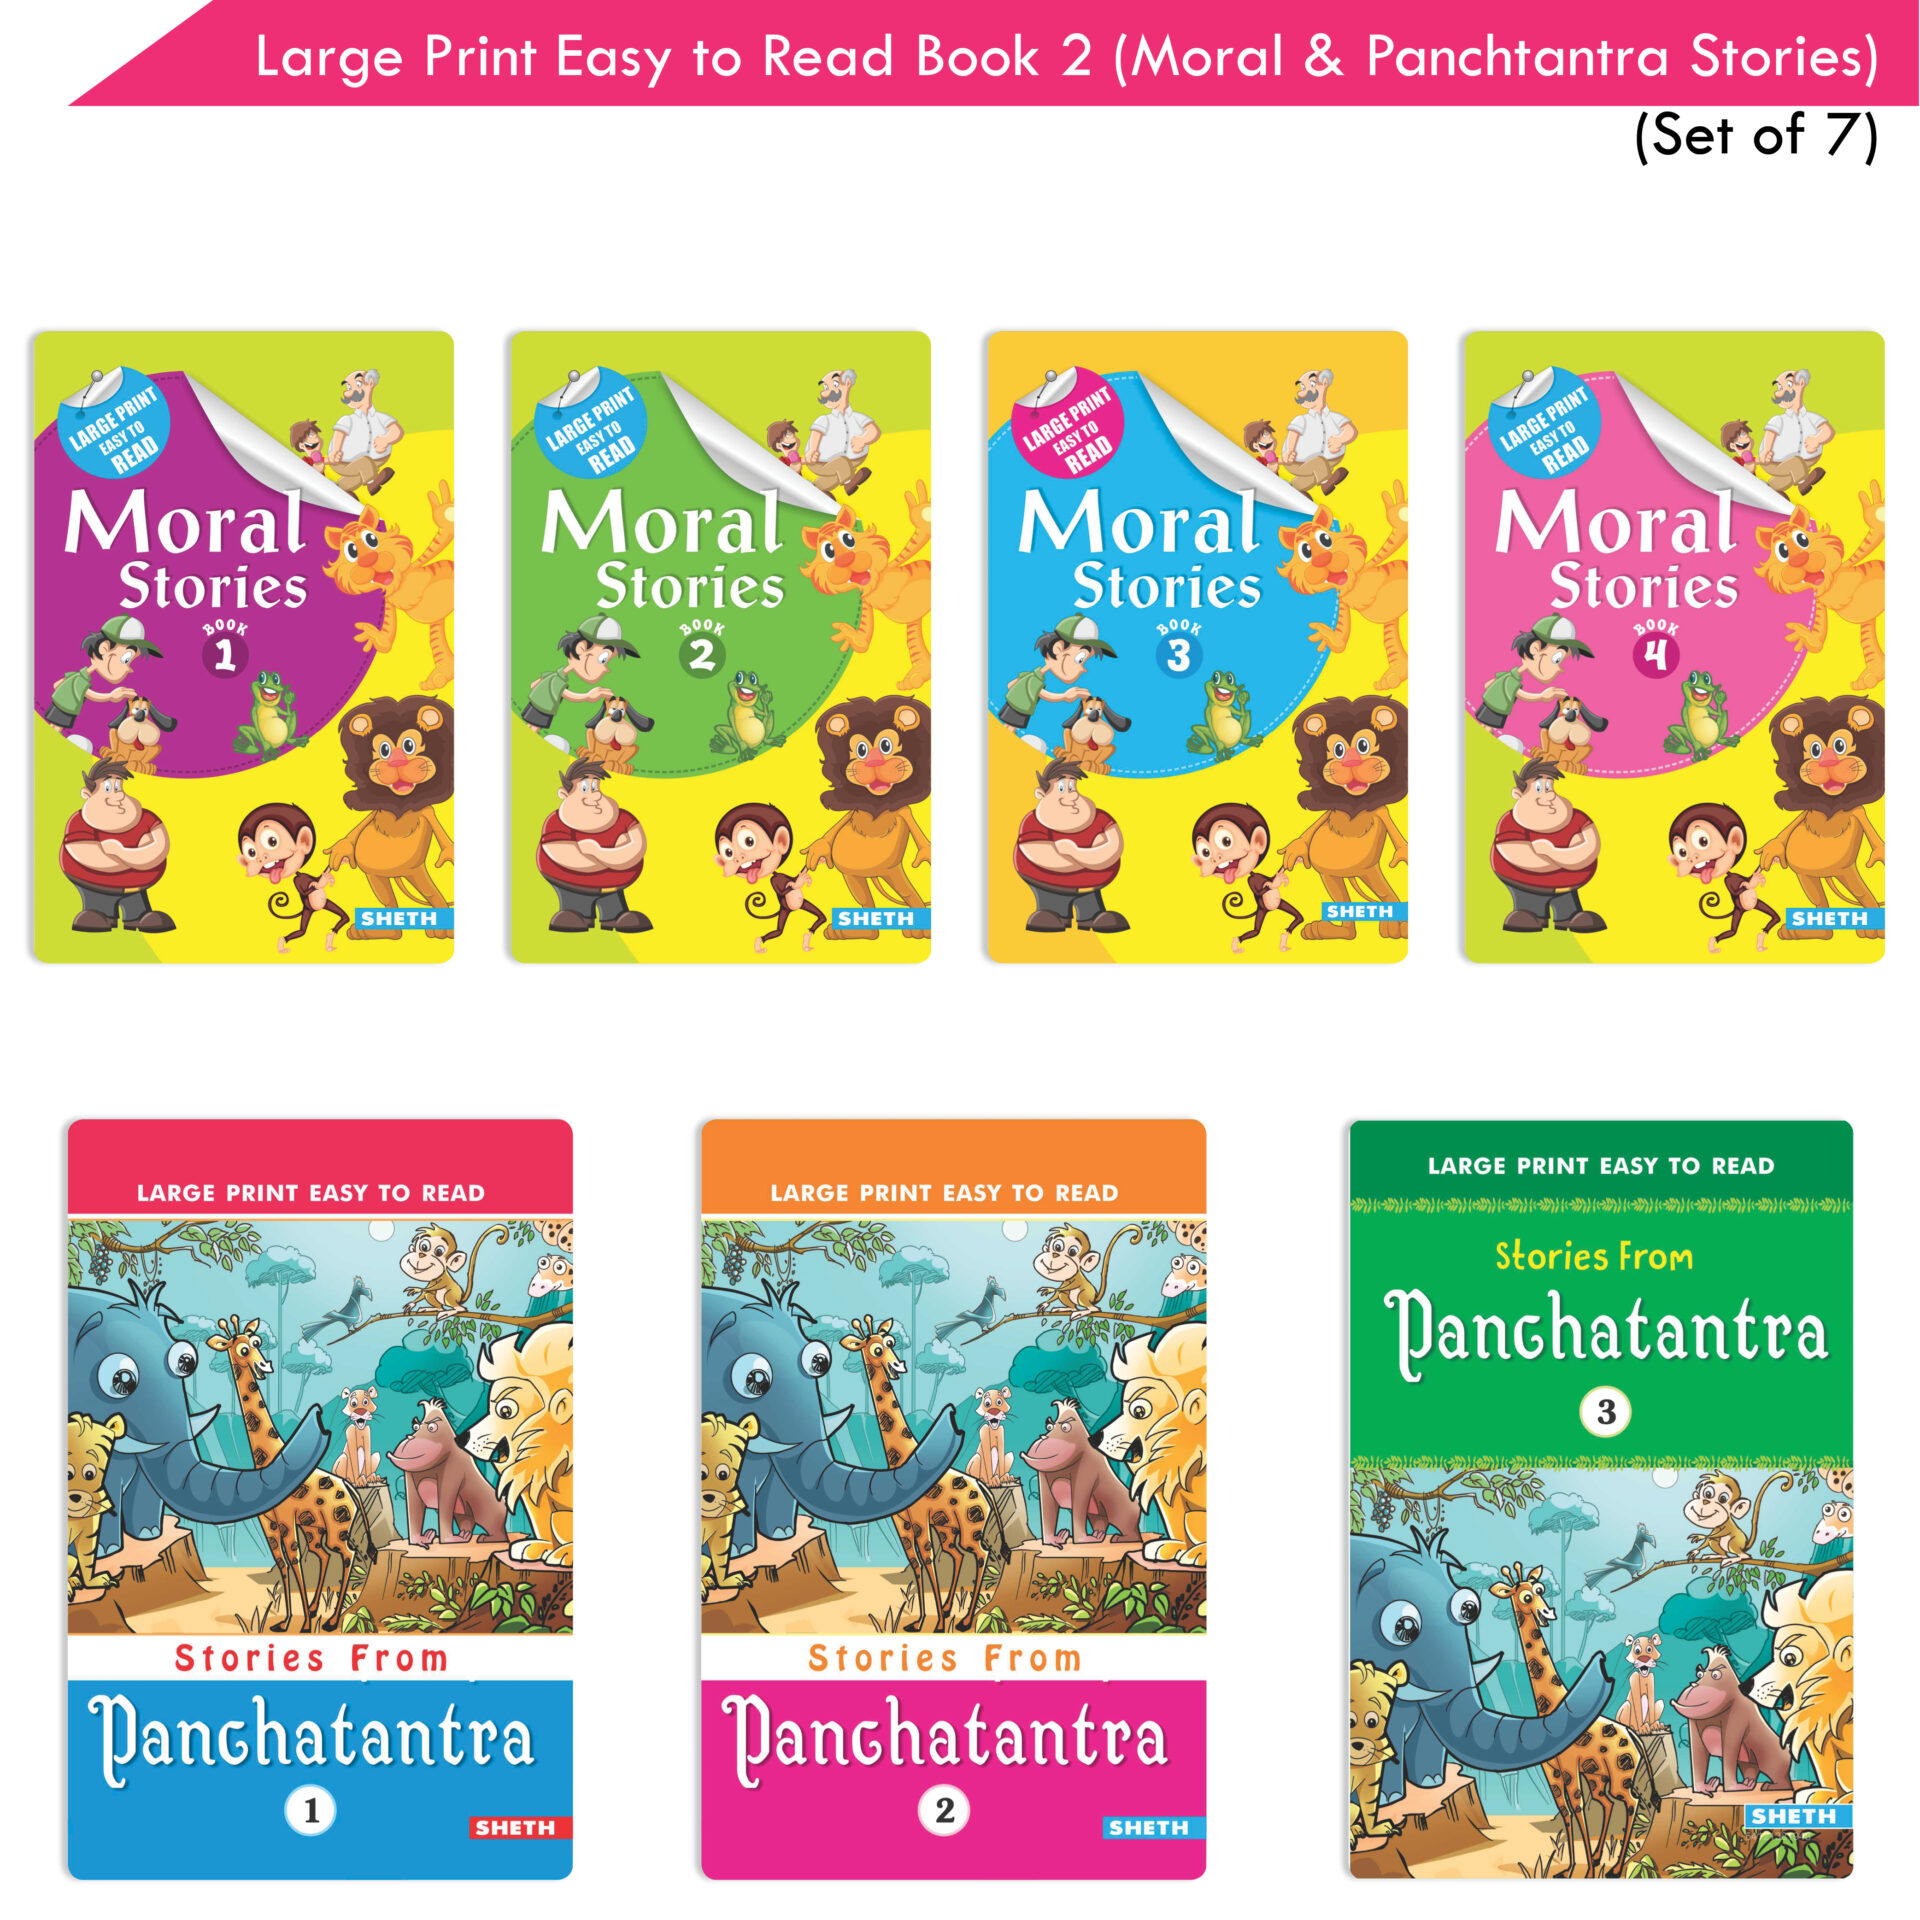 Large Print Easy to Read Book 2 Set of 7 1